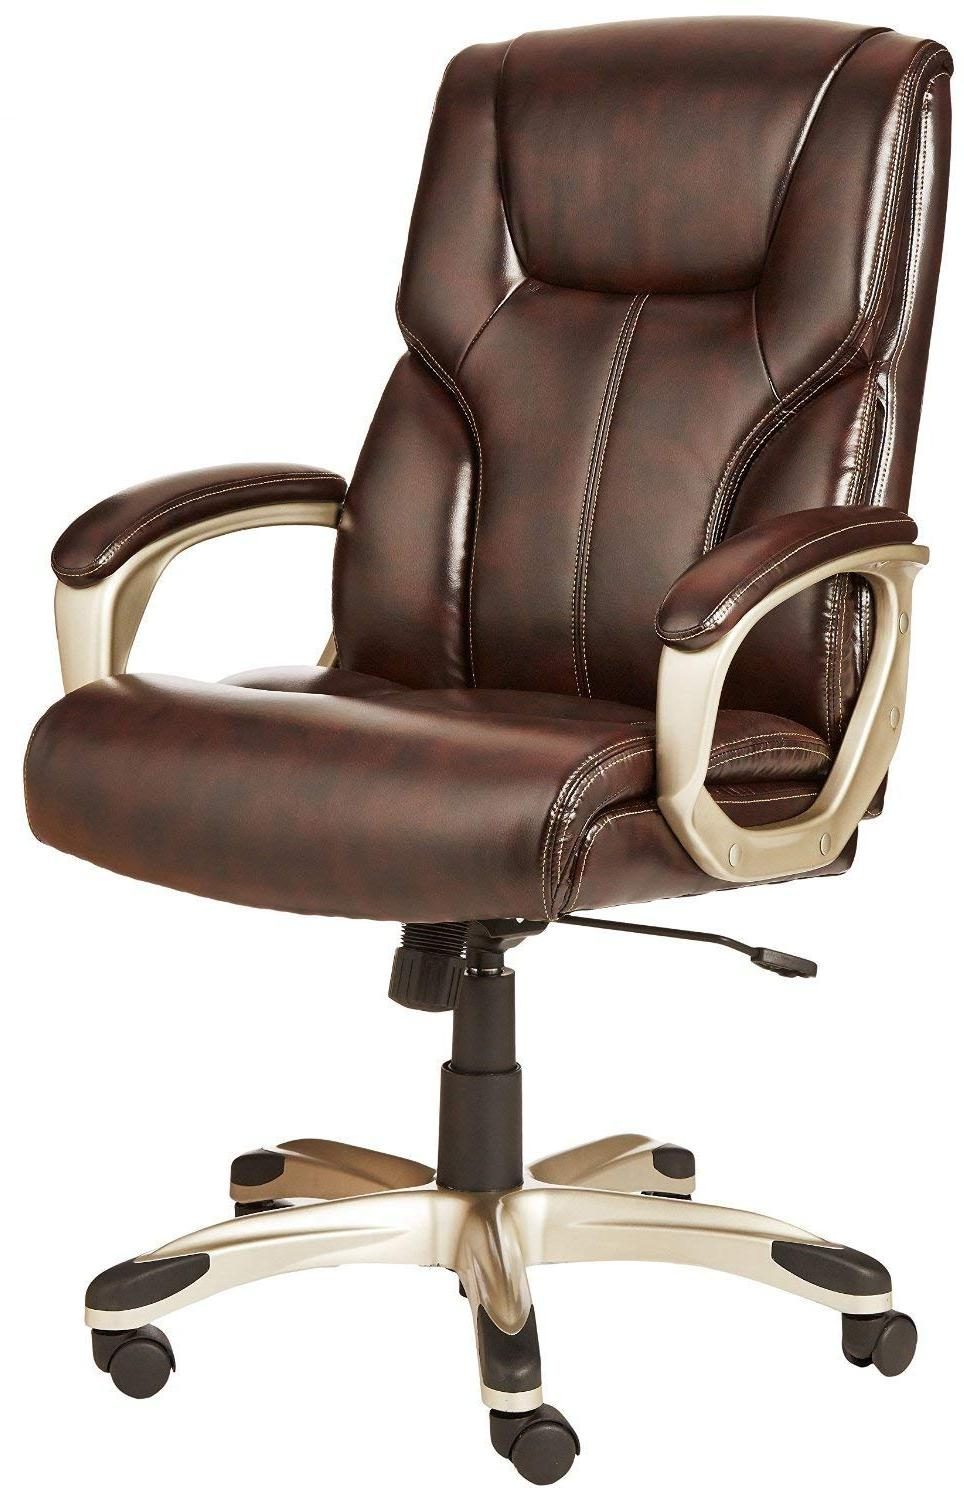 AmazonBasics High-Back Executive Chair - Brown, New, Big,